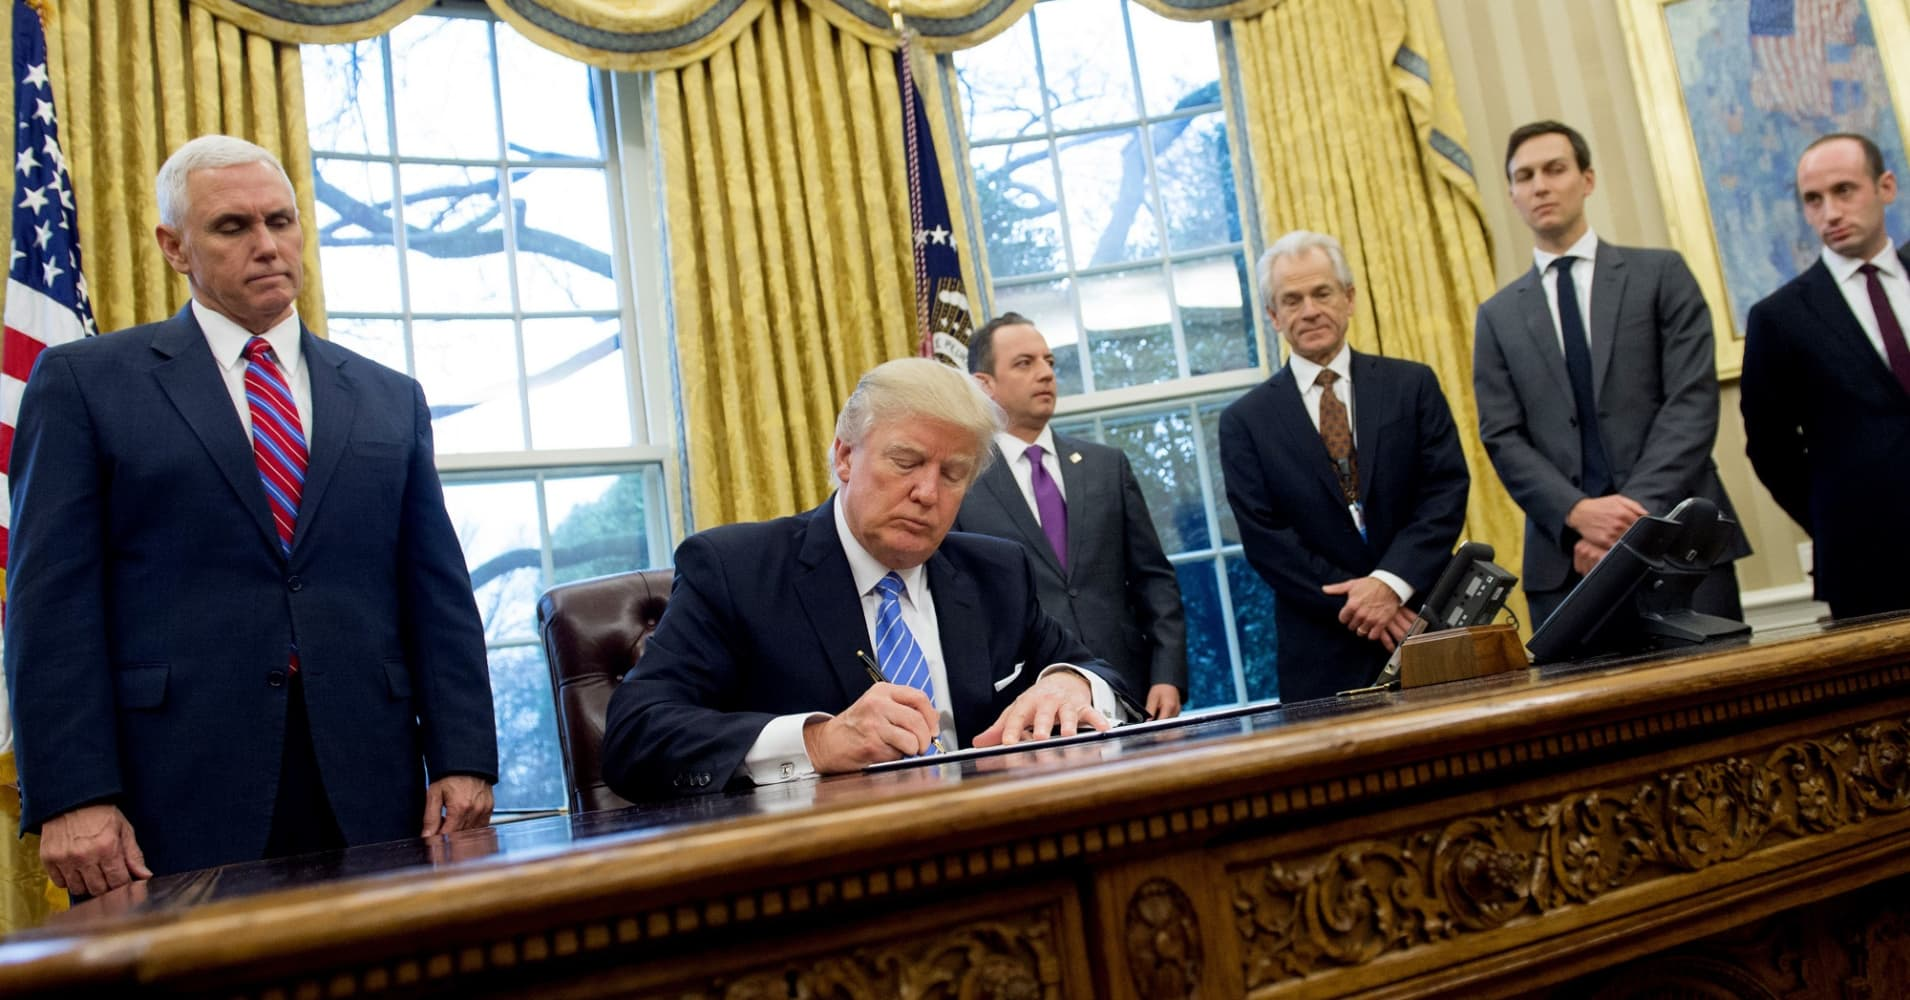 President Donald Trump signs an executive order alongside White House Chief of Staff Reince Priebus (C), US Vice President Mike Pence (L), National Trade Council